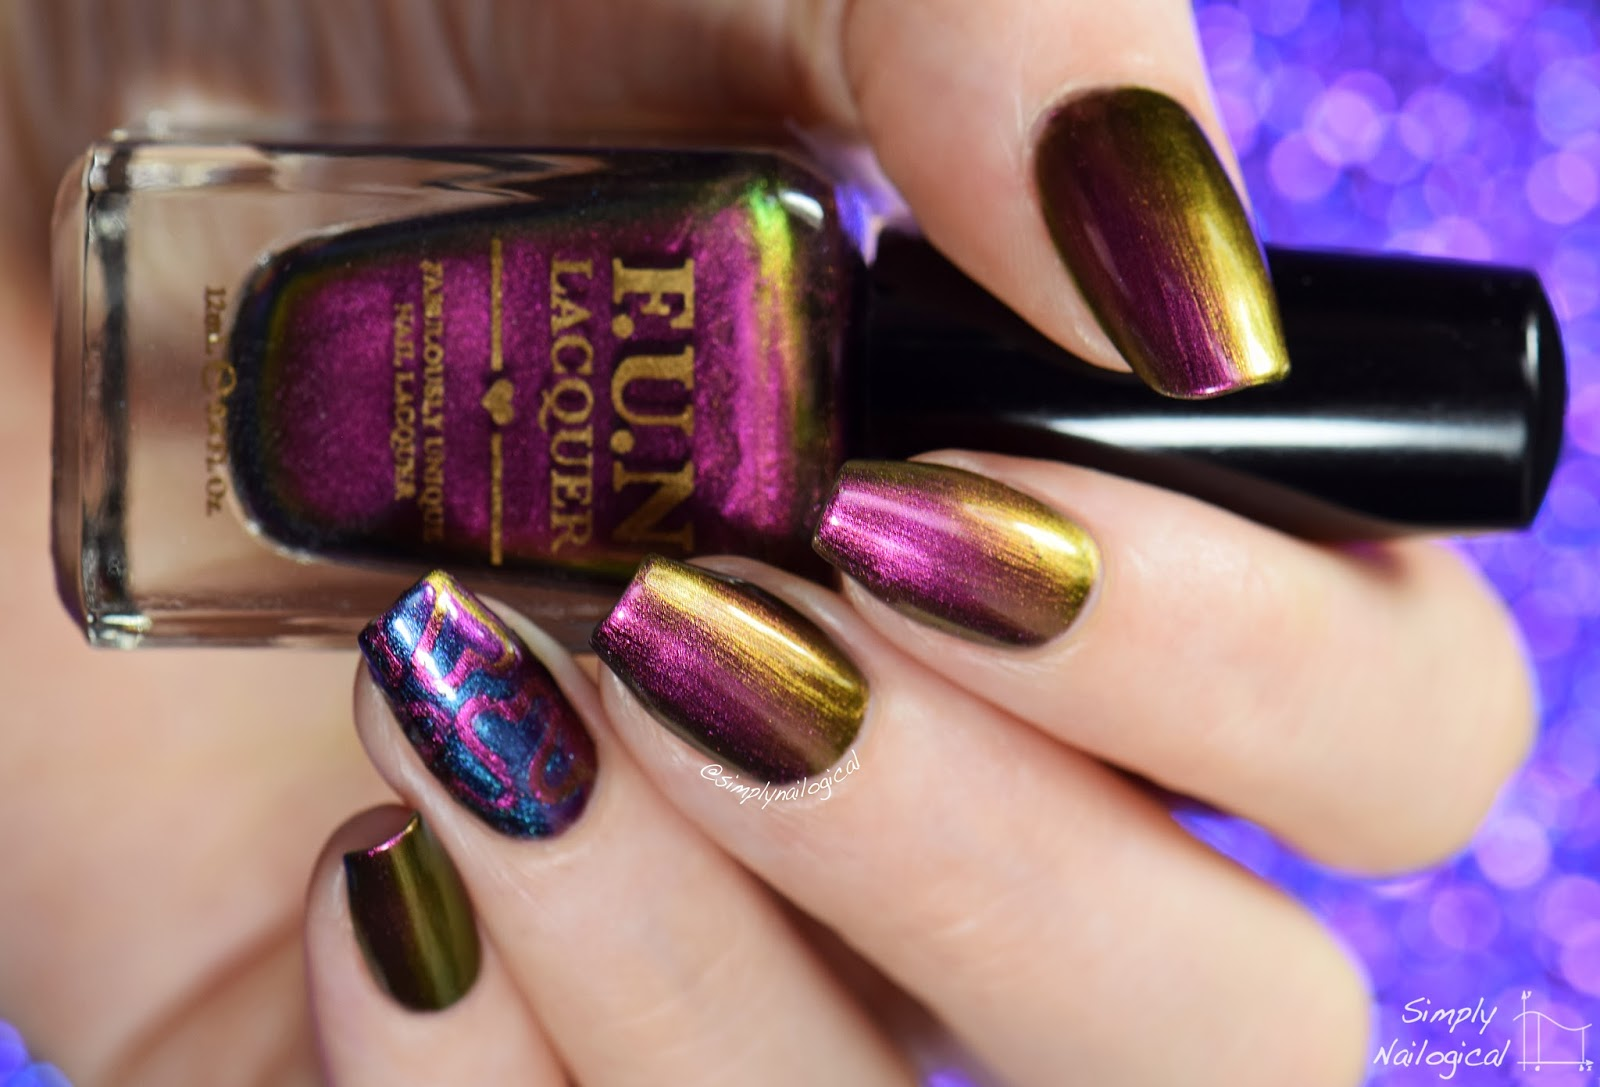 FUN Lacquer 2015 Love collection - Unconditional Love